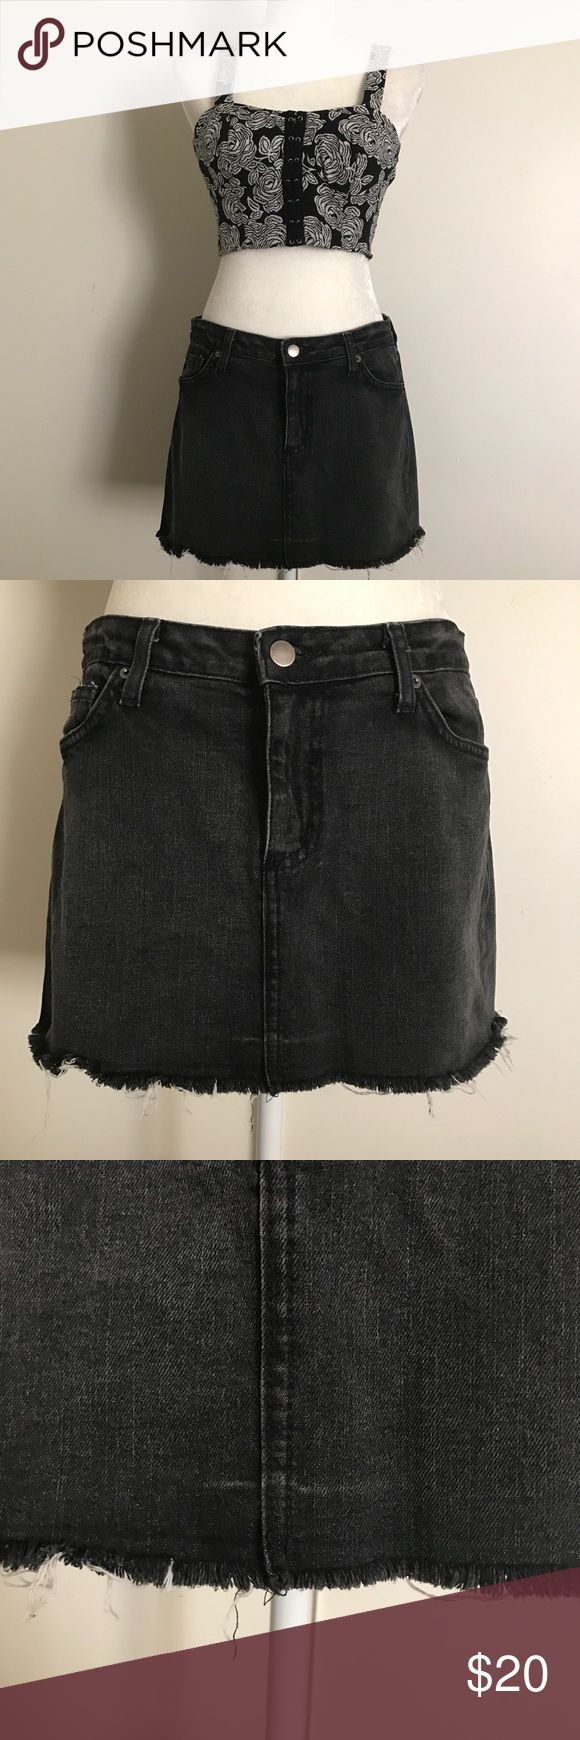 "🔥 Urban Outfitters Black Denim Mini Skirt This mini skirt is about 12.5"" long - please keep in mind this fits very short on curvier girls!   The skirt is stretchy and very comfortable!   Has a some discoloration as show in the photo, but it adds to the distressed look.  Material: 99% Cotton, 1% Spandex Machine Wash Cold Lux Skirts Mini"